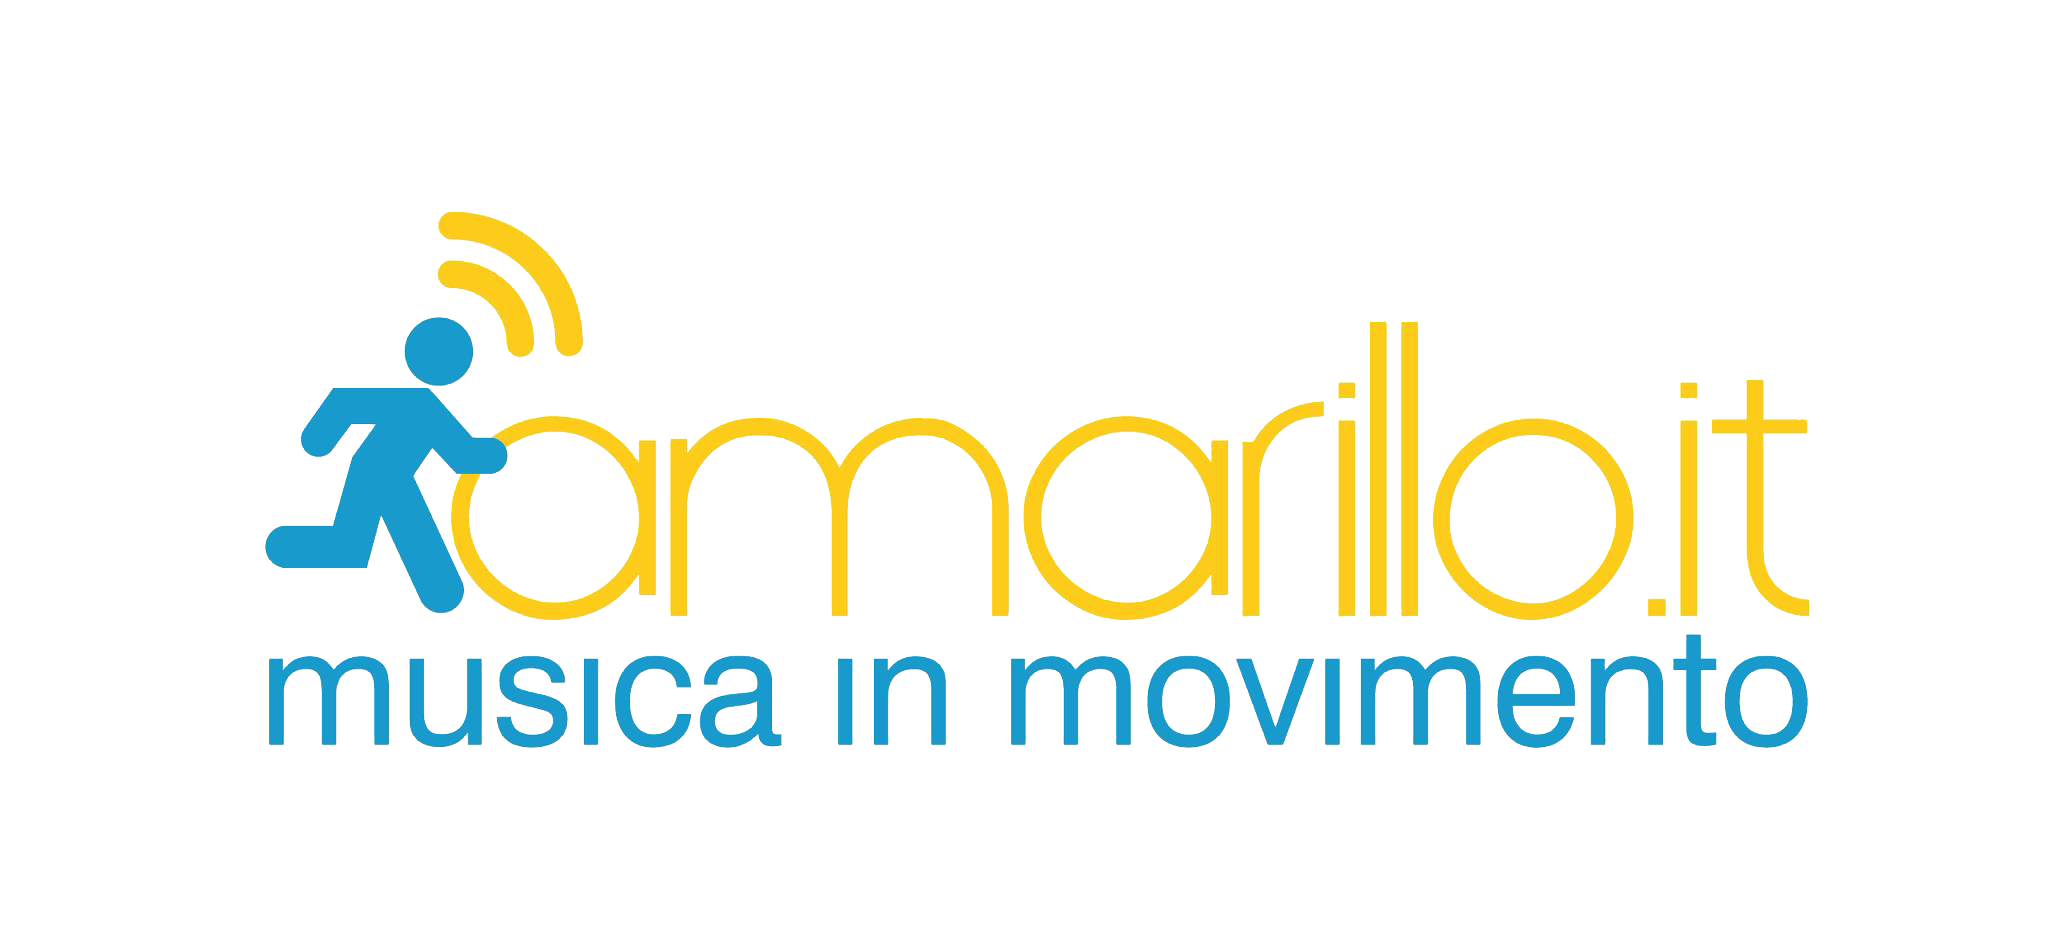 AMARILLO | Musica in movimento